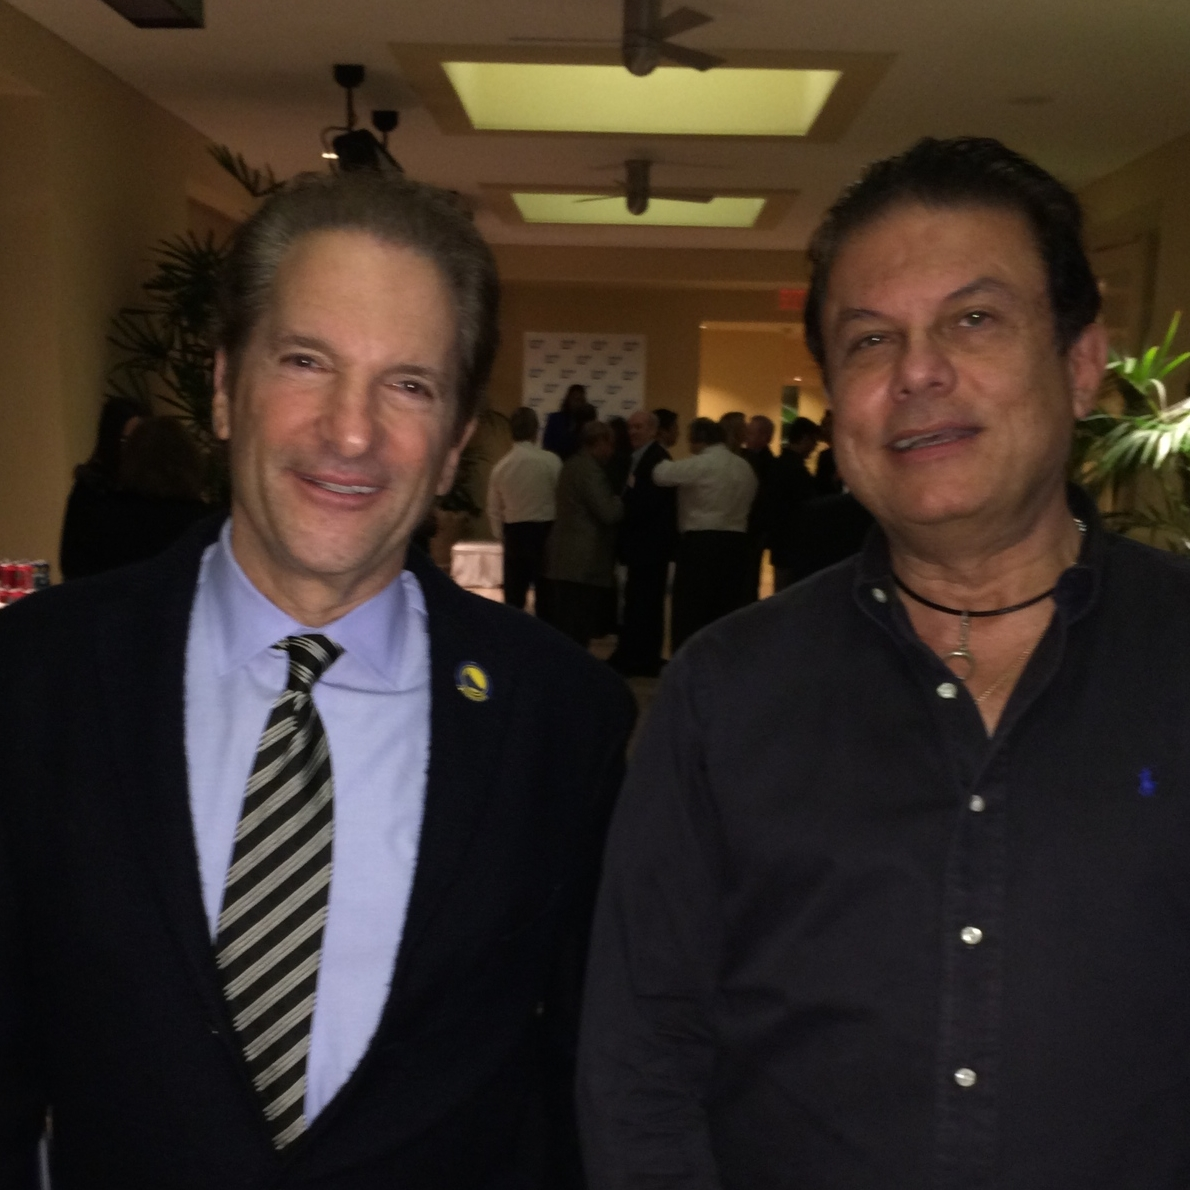 Joe Ippolito and friend Peter Guber (CEO Mandalay Entertainment, co-owner Los Angeles Dodgers, Golden State Warriors, past president Sony Pictures, Columbia Pictures)